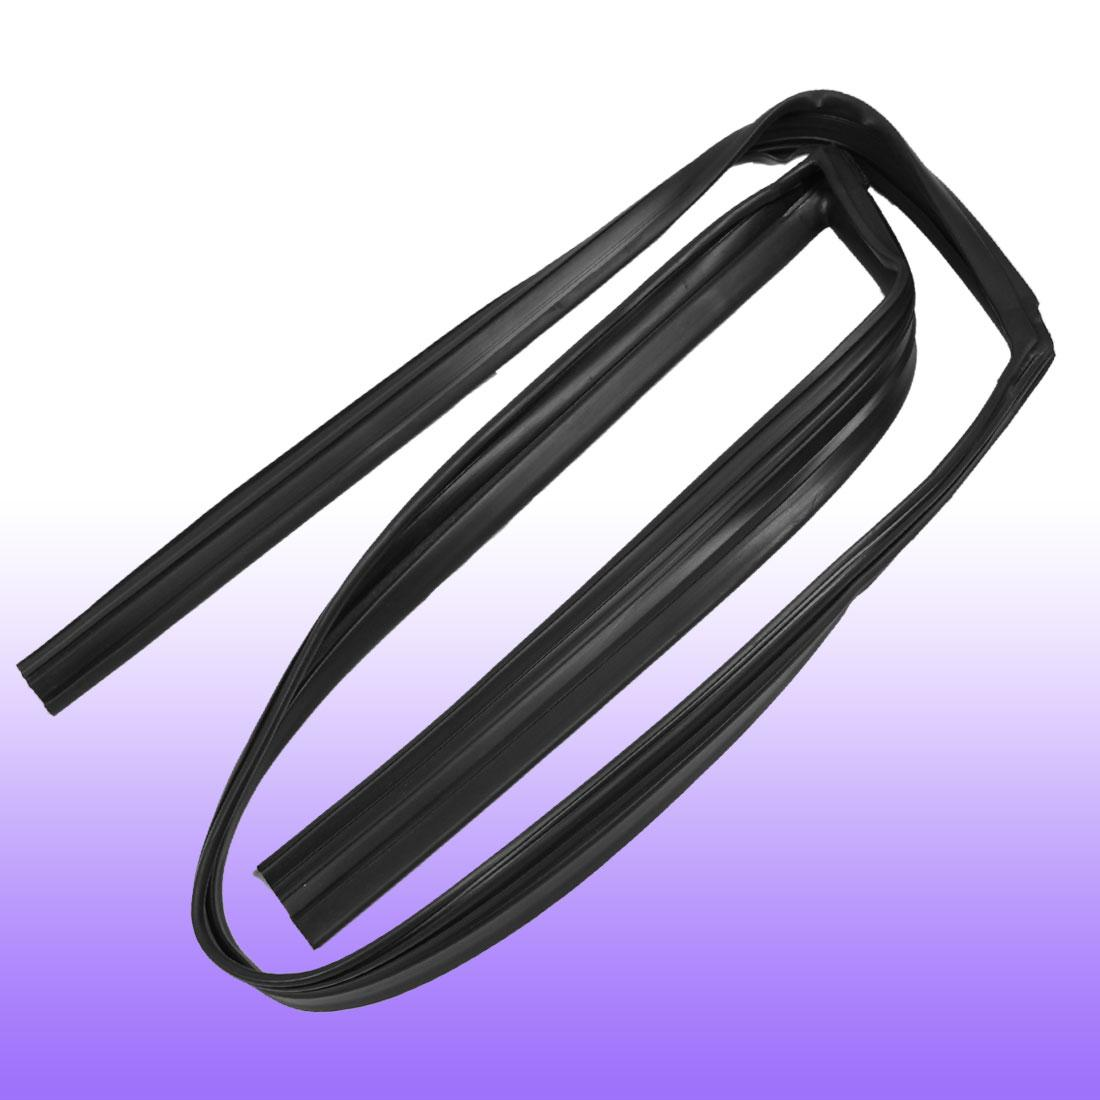 Rubber Left Front Door Glass Run Channel Seal Black 72275 S84 A01